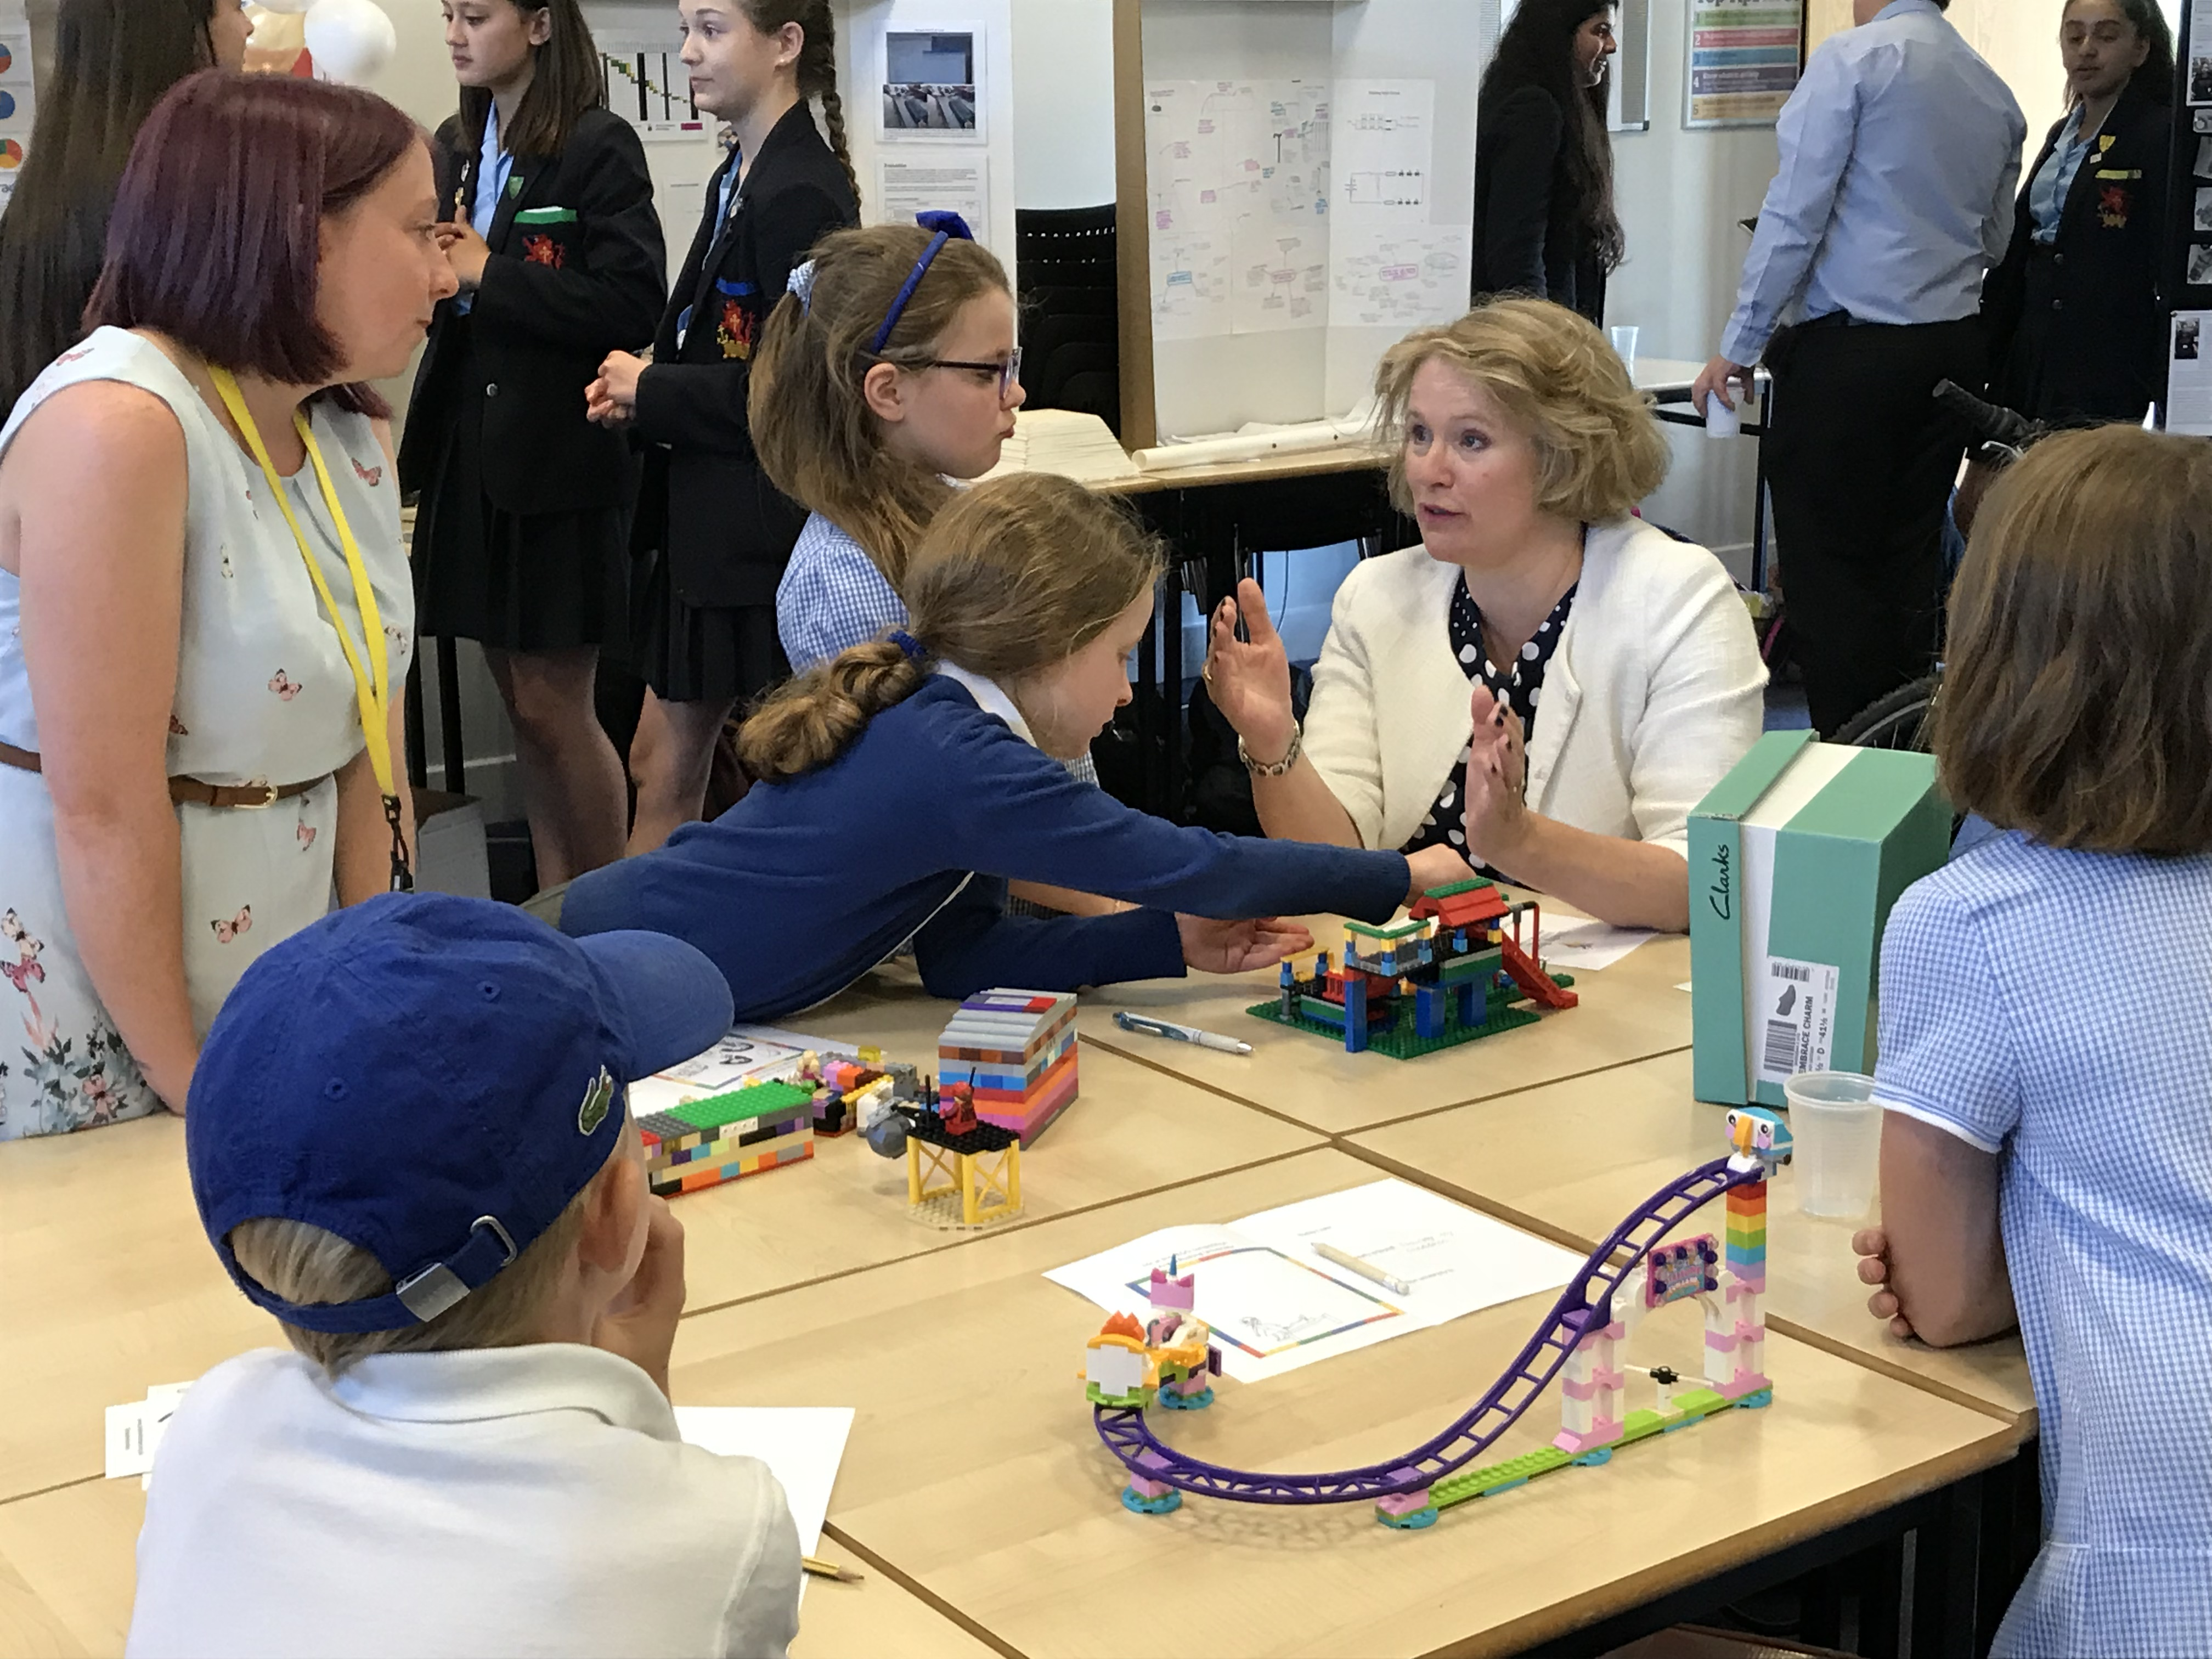 Vicky Ford speaks to children of Trinity Road Primary School about STEM career opportunities